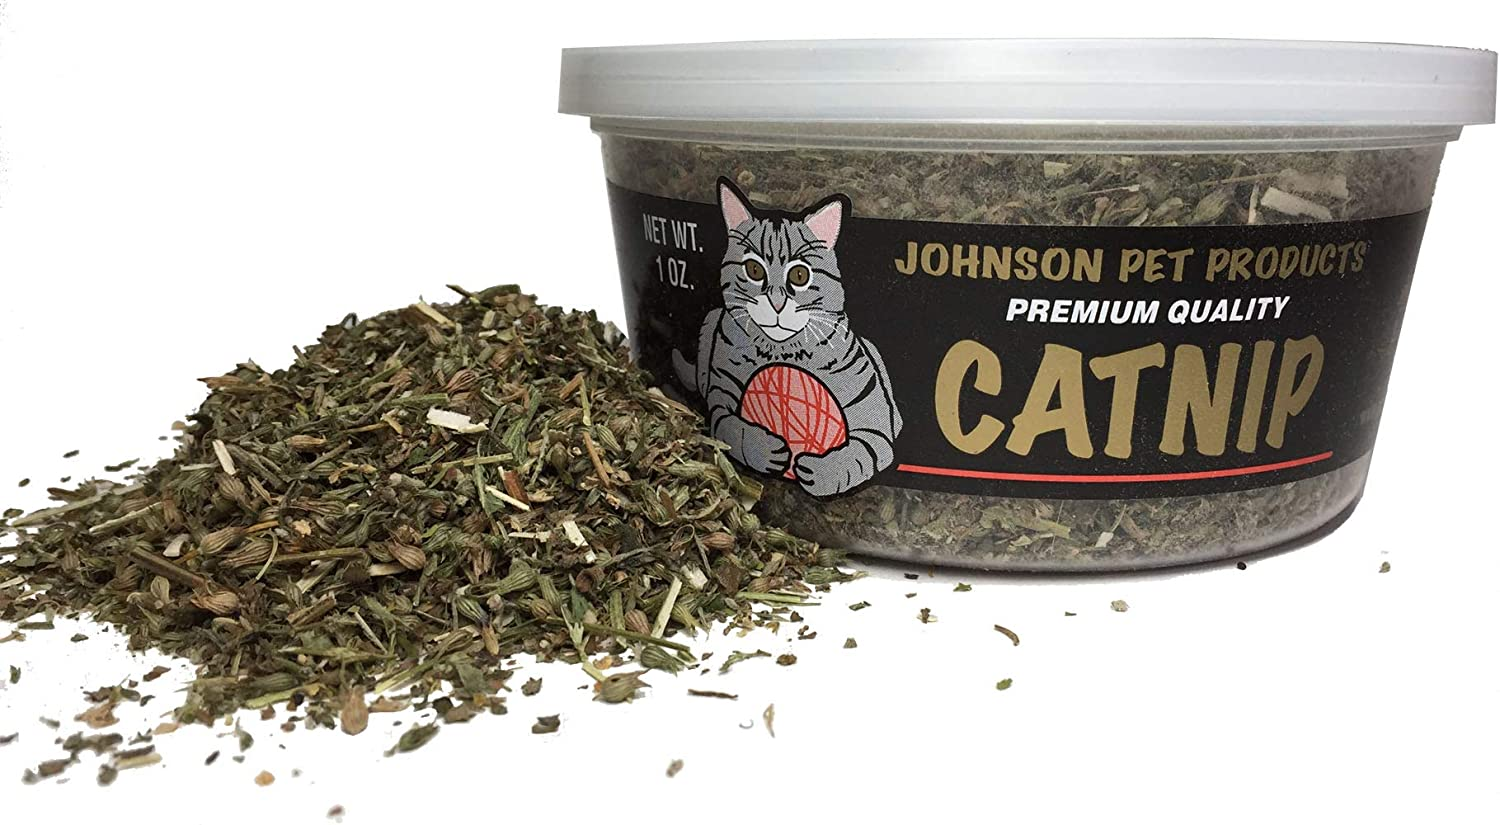 Johnson Pet Products 1 oz. Crazy Catnip Cat Max 61% OFF Container Super Special SALE held